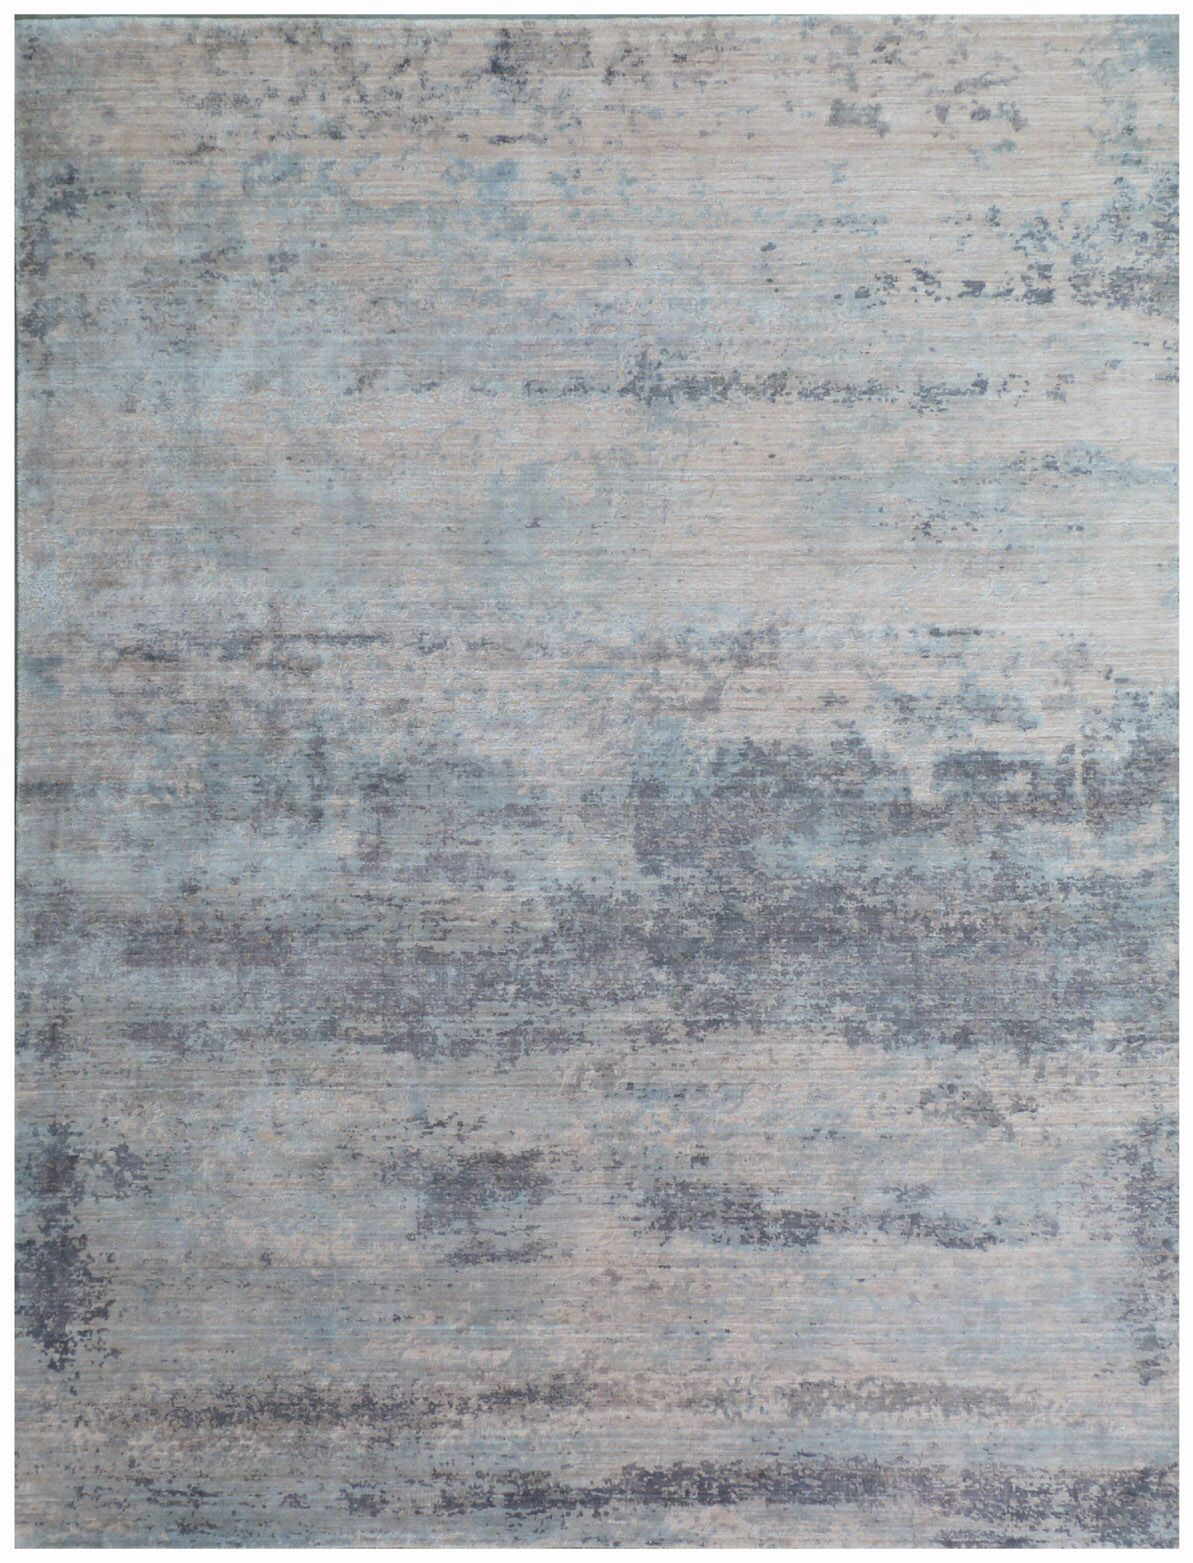 Roset Hand-Woven Silver Area Rug Rug Size: Rectangle 6' x 9'